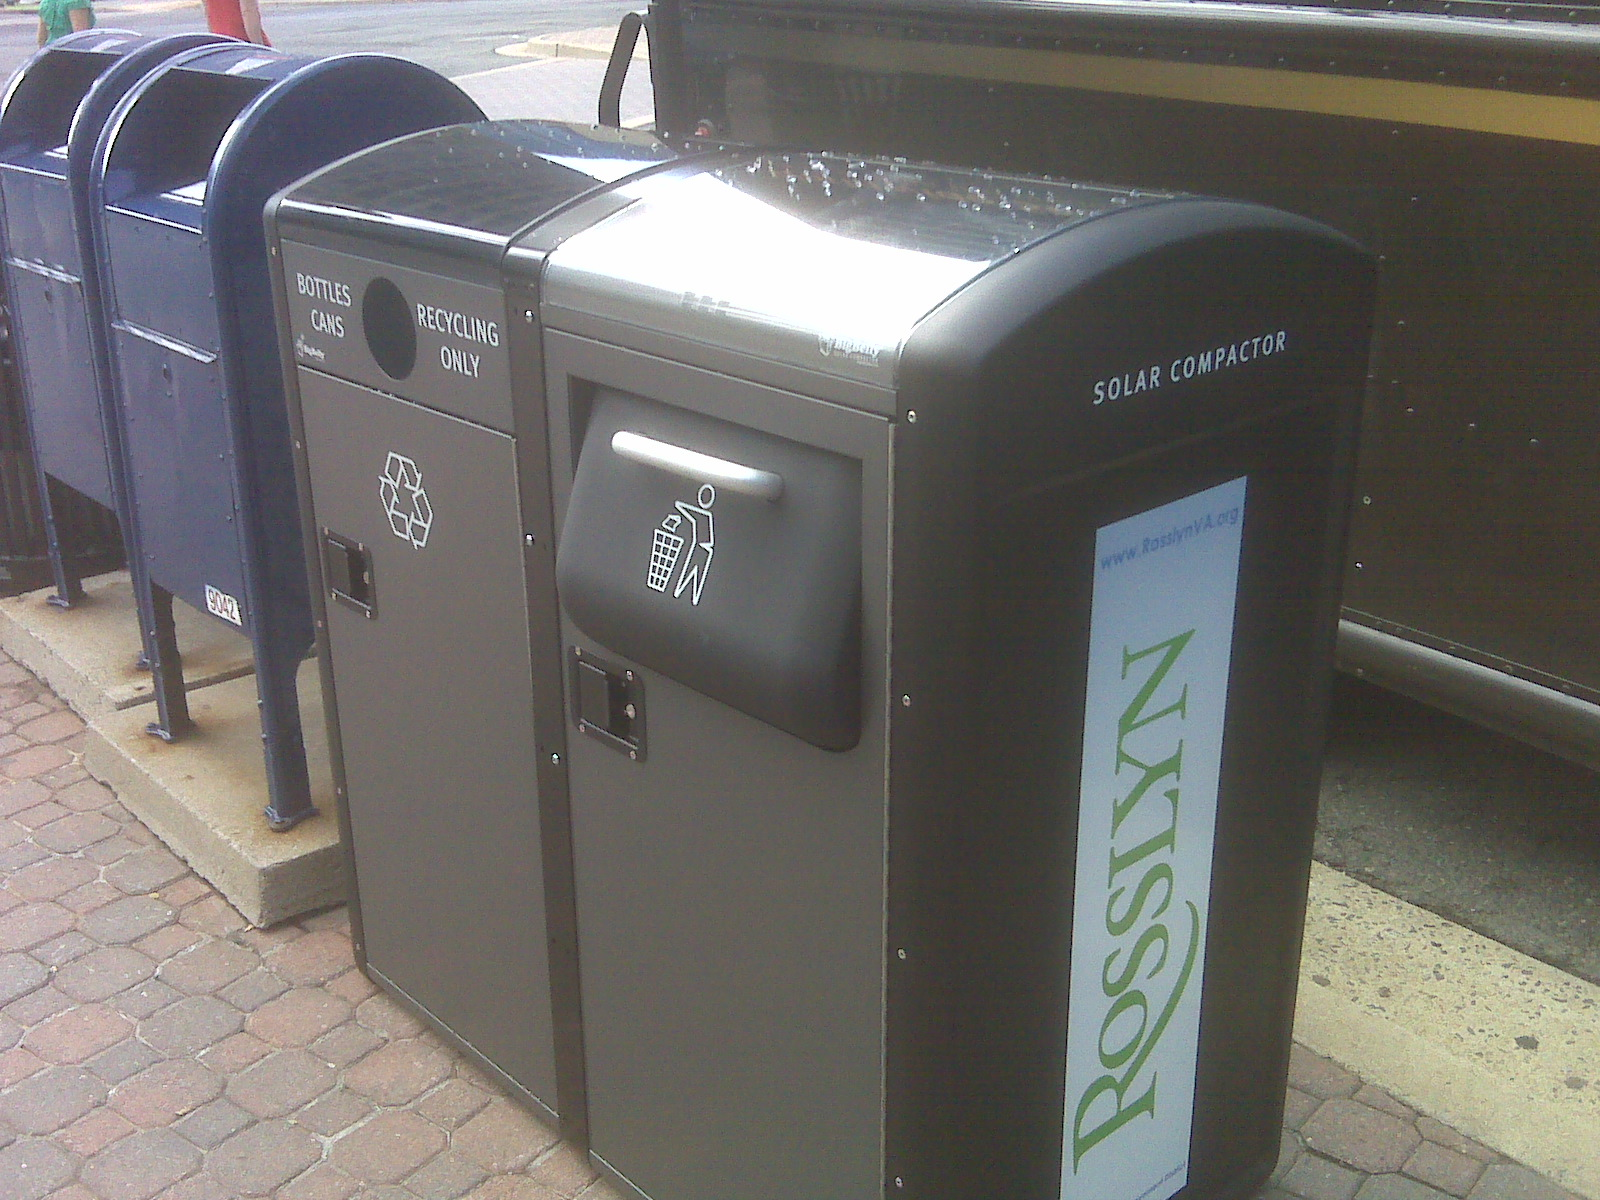 Fancy Solar Compactors Spotted In Rosslyn We Love Dc